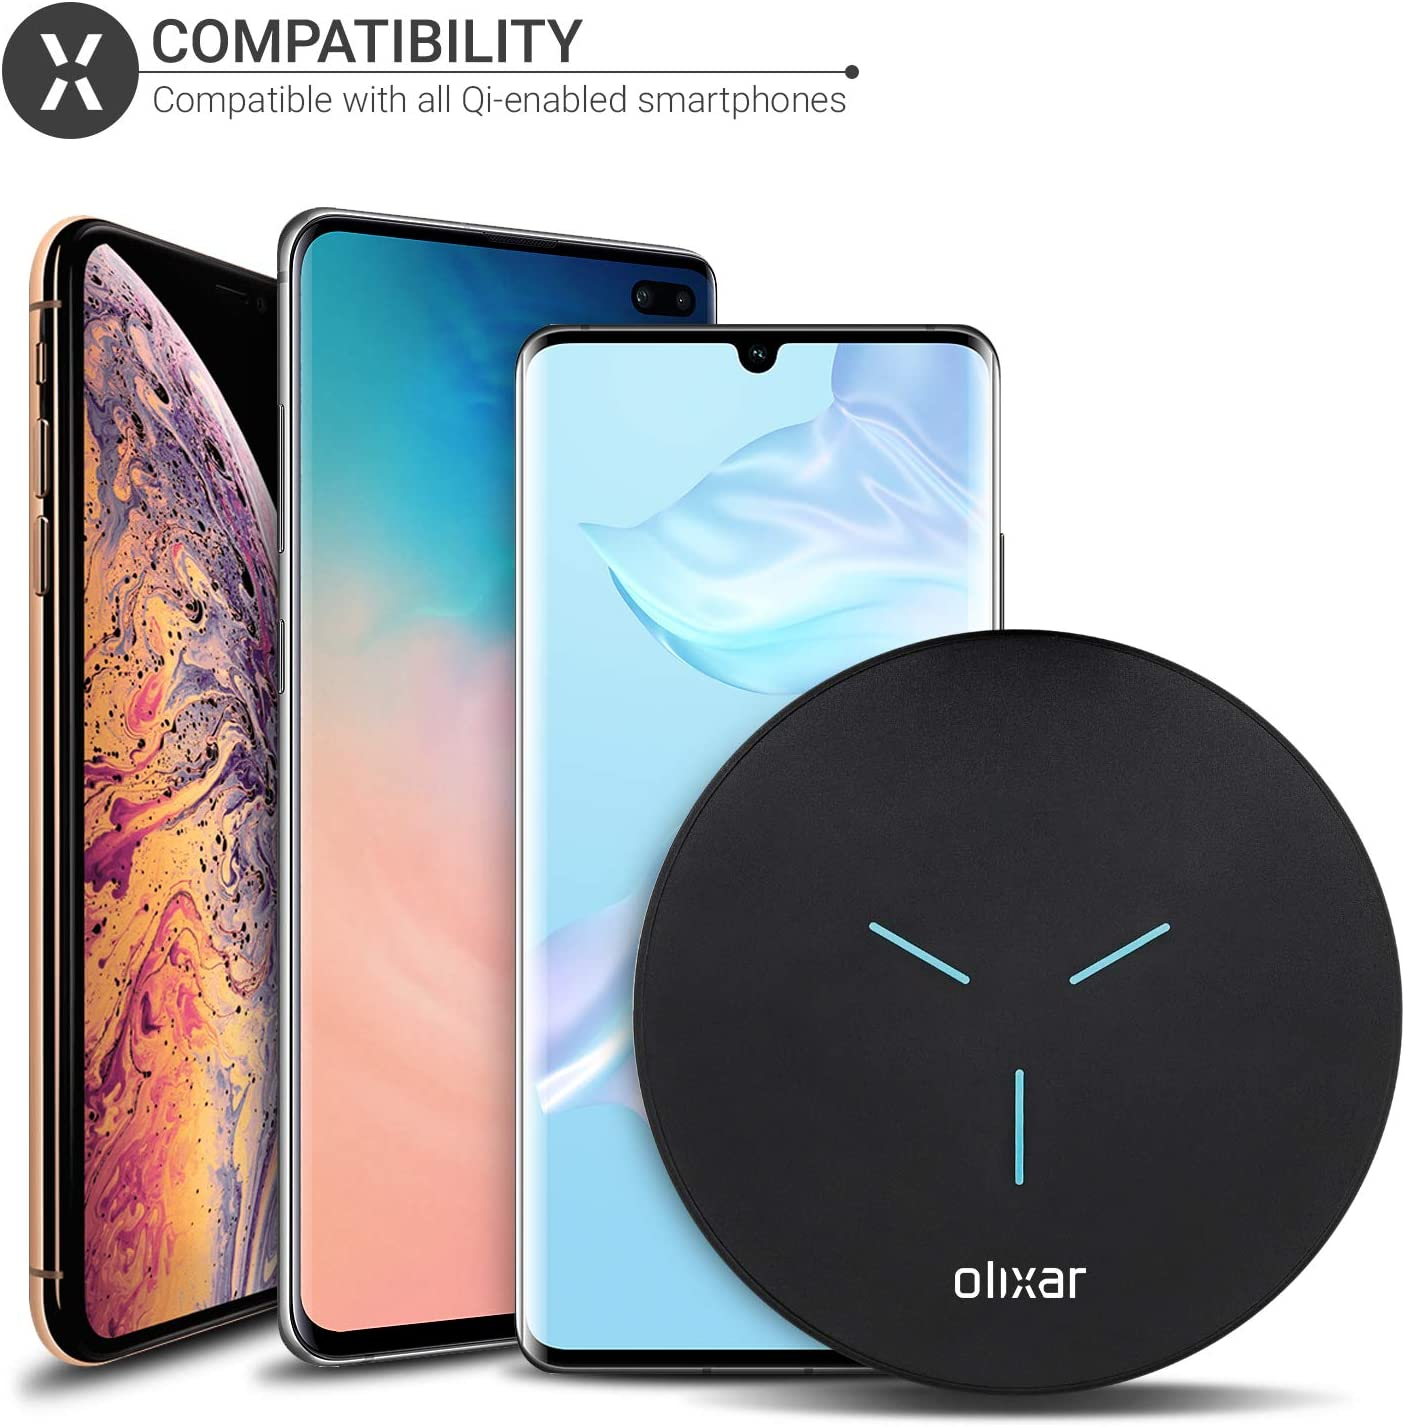 Olixar 10W Wireless Charging Pad 10W Fast Charging Pad Compatible with All Qi Enabled Smartphones Black Ultra Slim LED Indicator